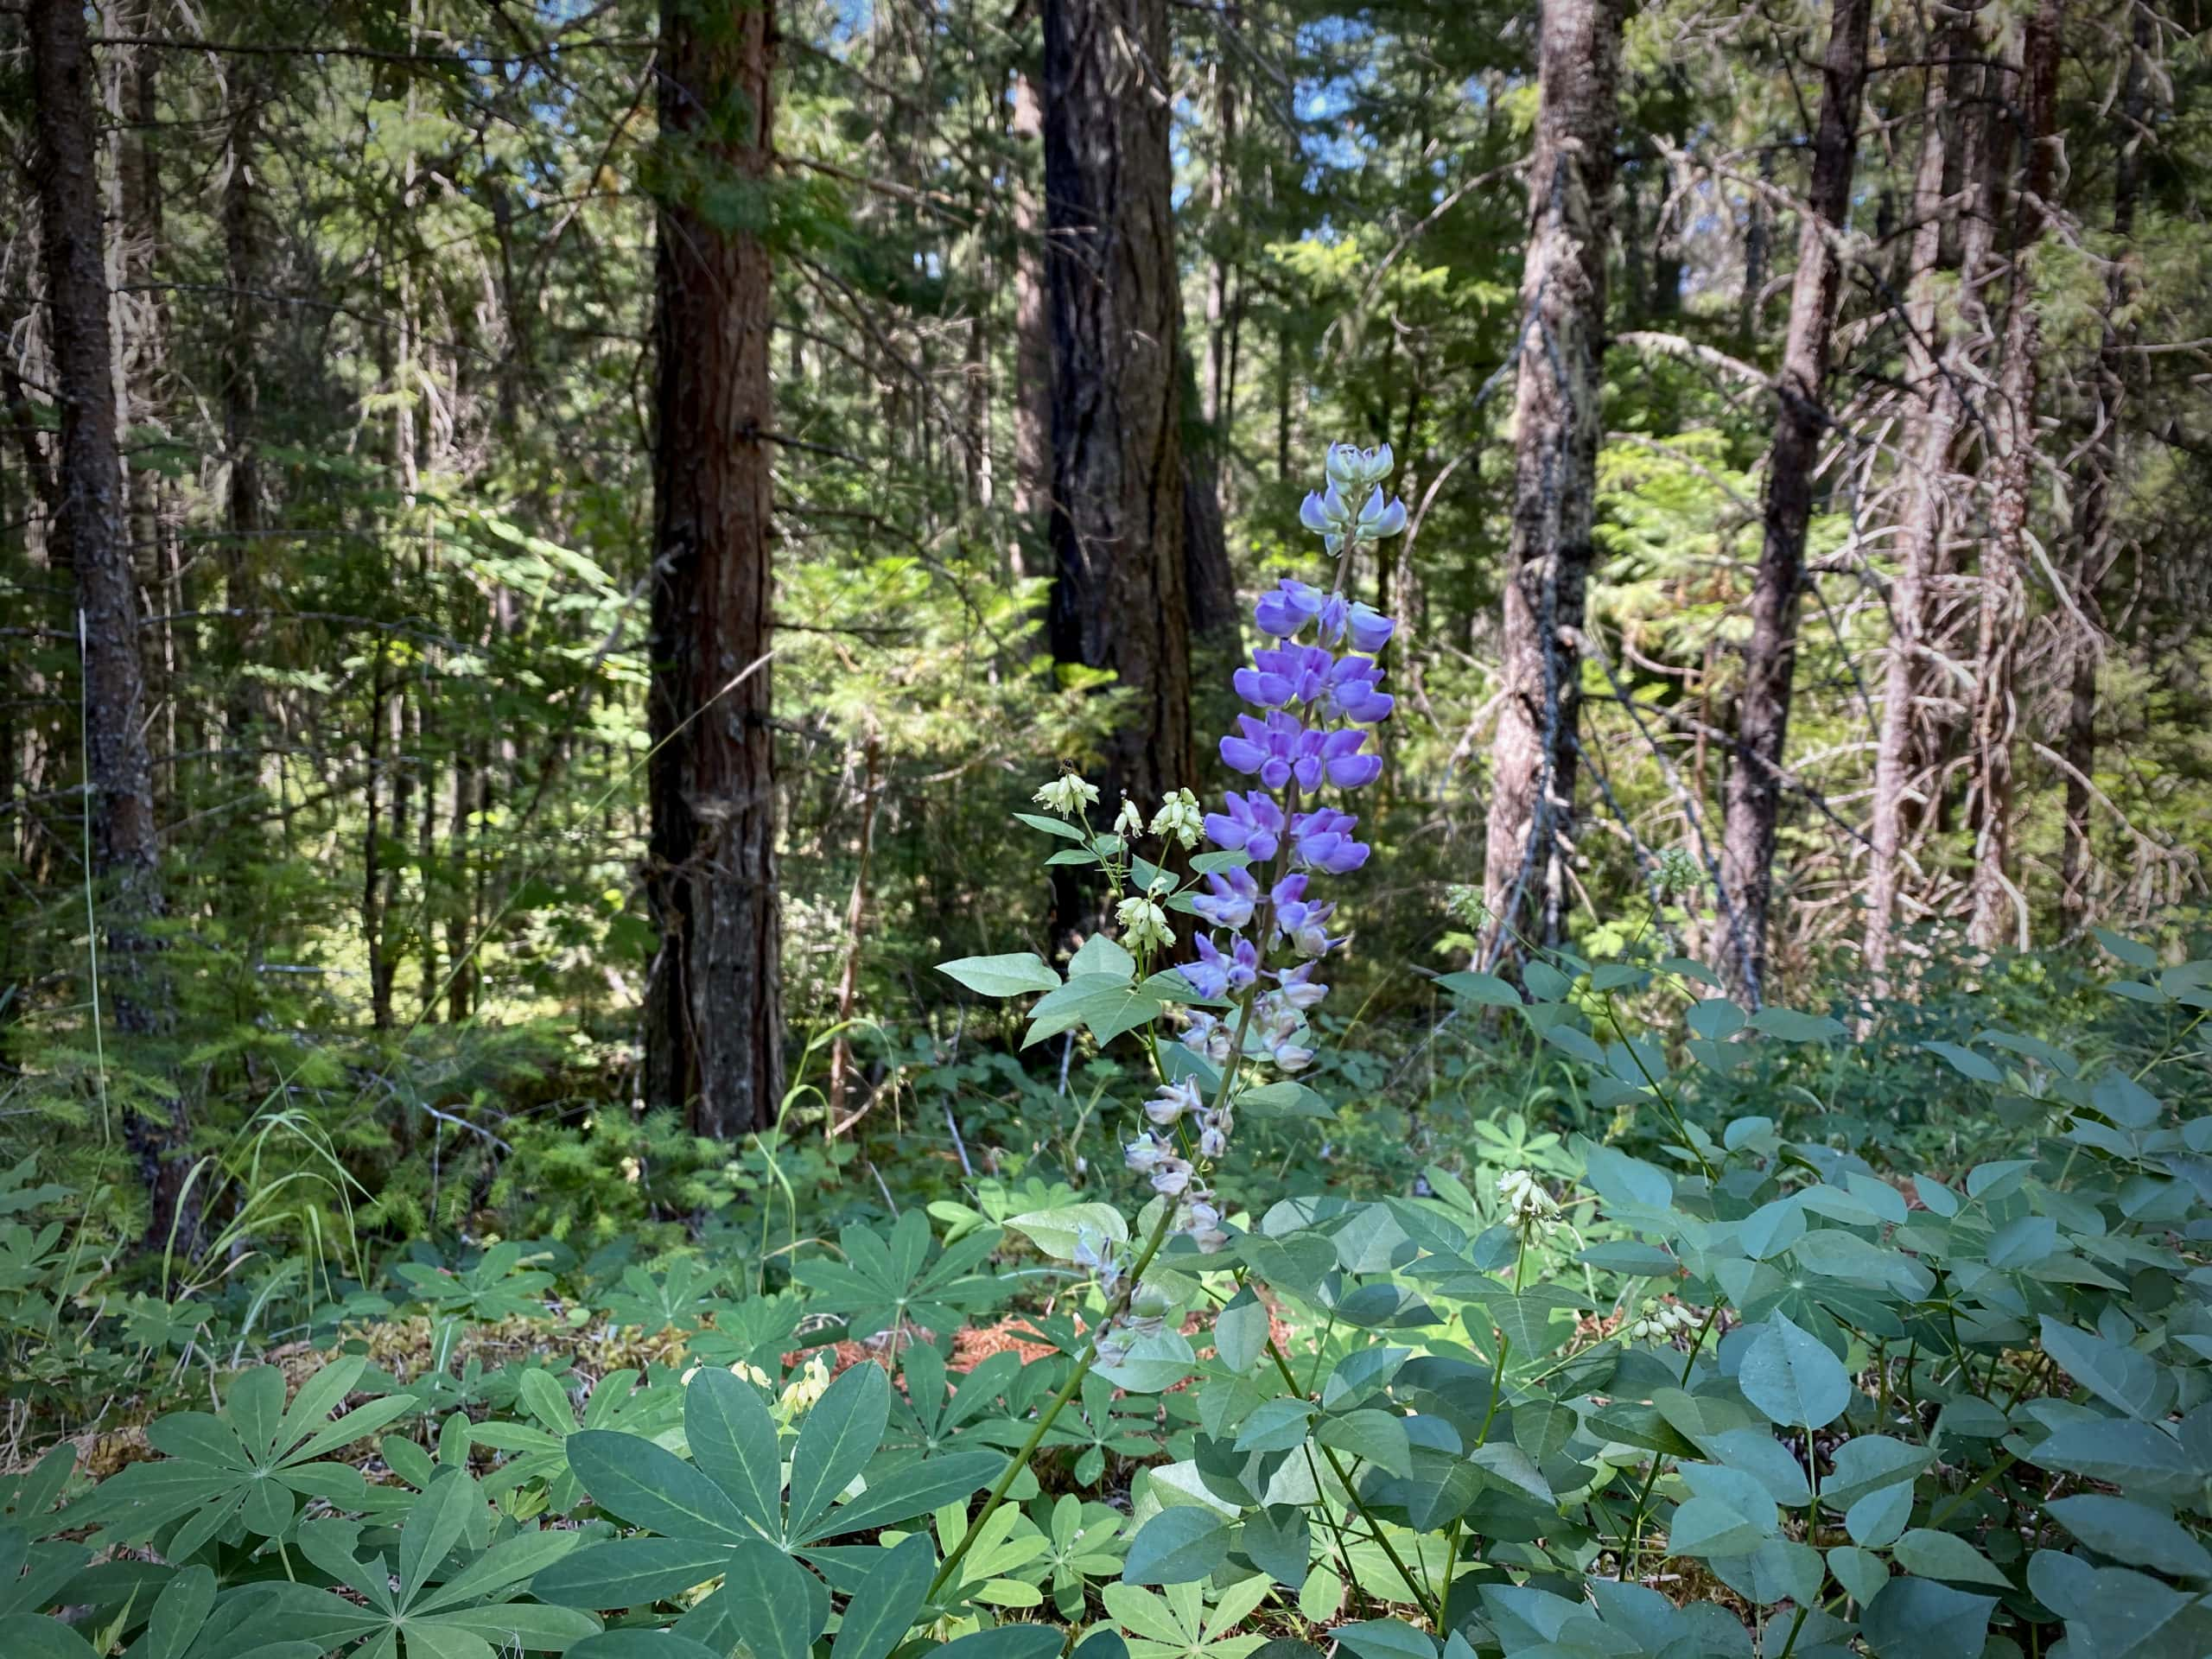 Purple flower along NF 23 in the Willamette National Forest.